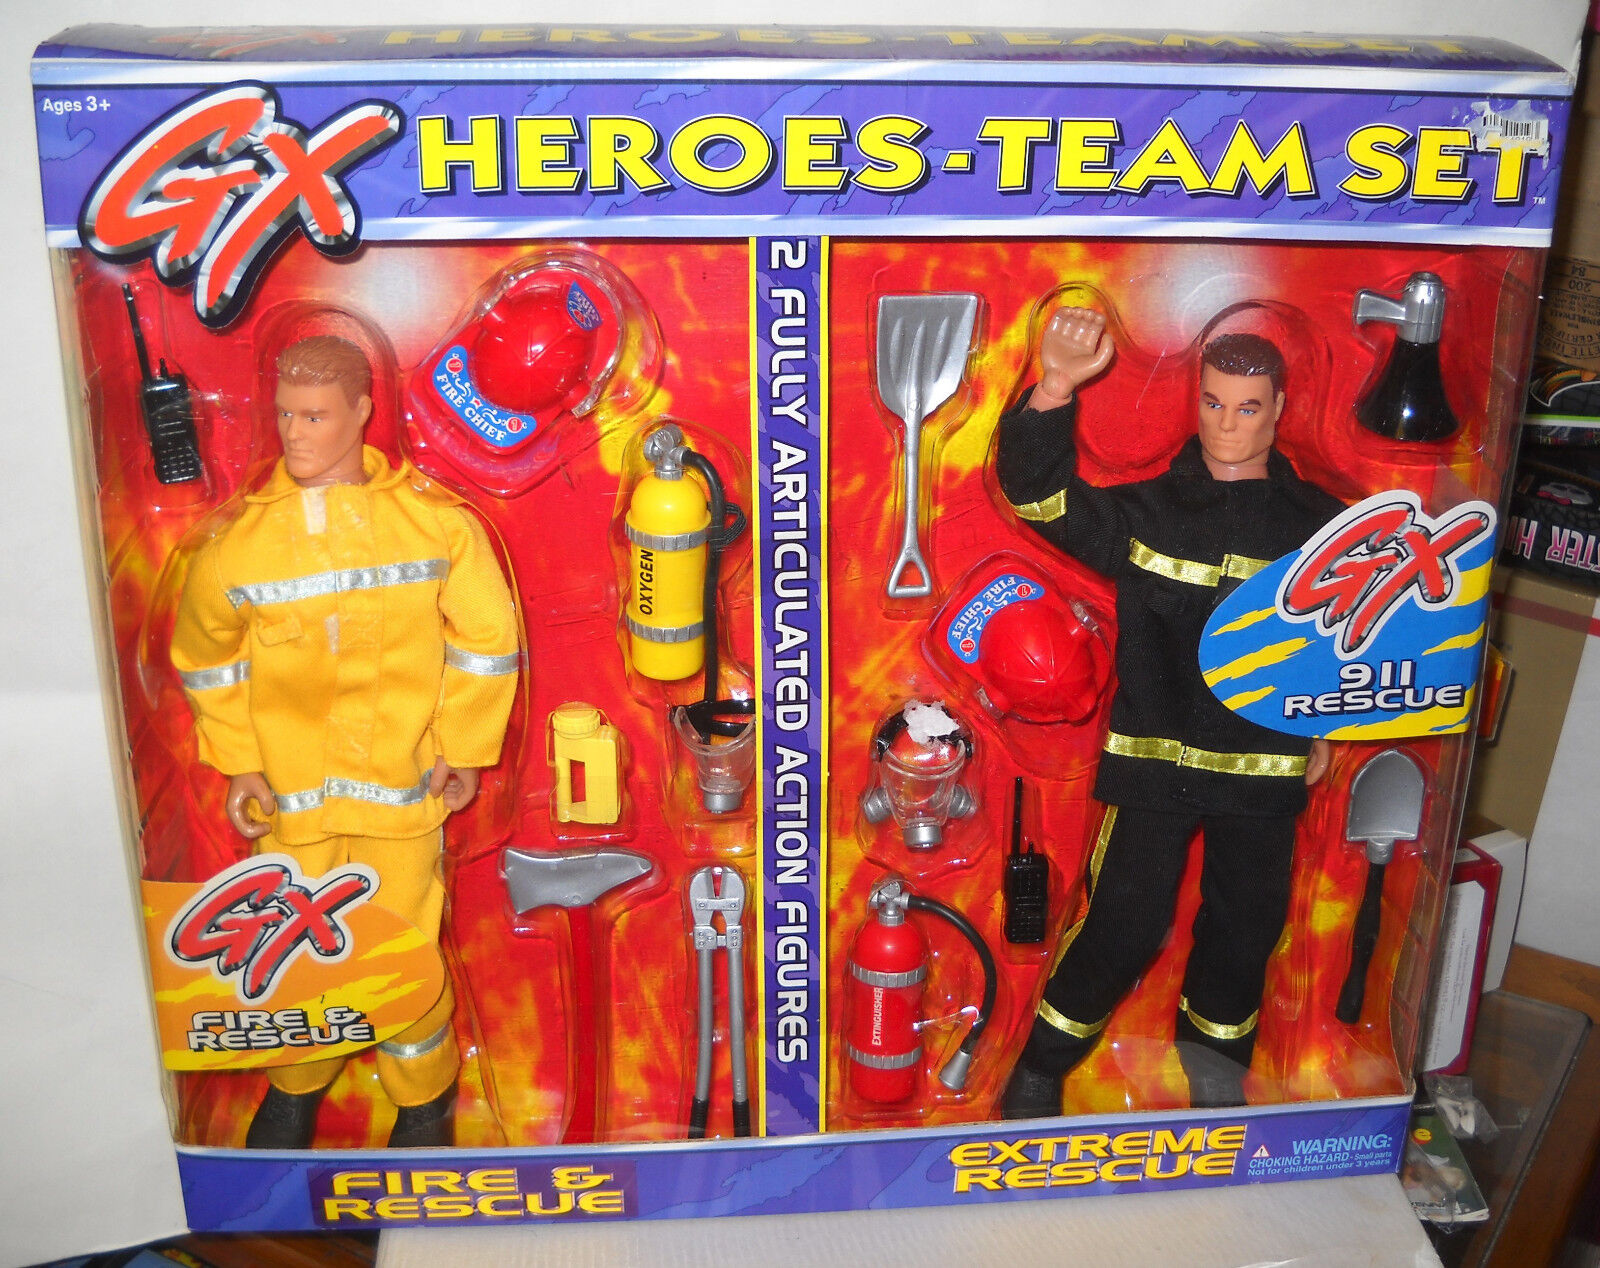 4362 Placo Generation Extreme Heroes Fire & Rescue & Extreme Rescue Team Set